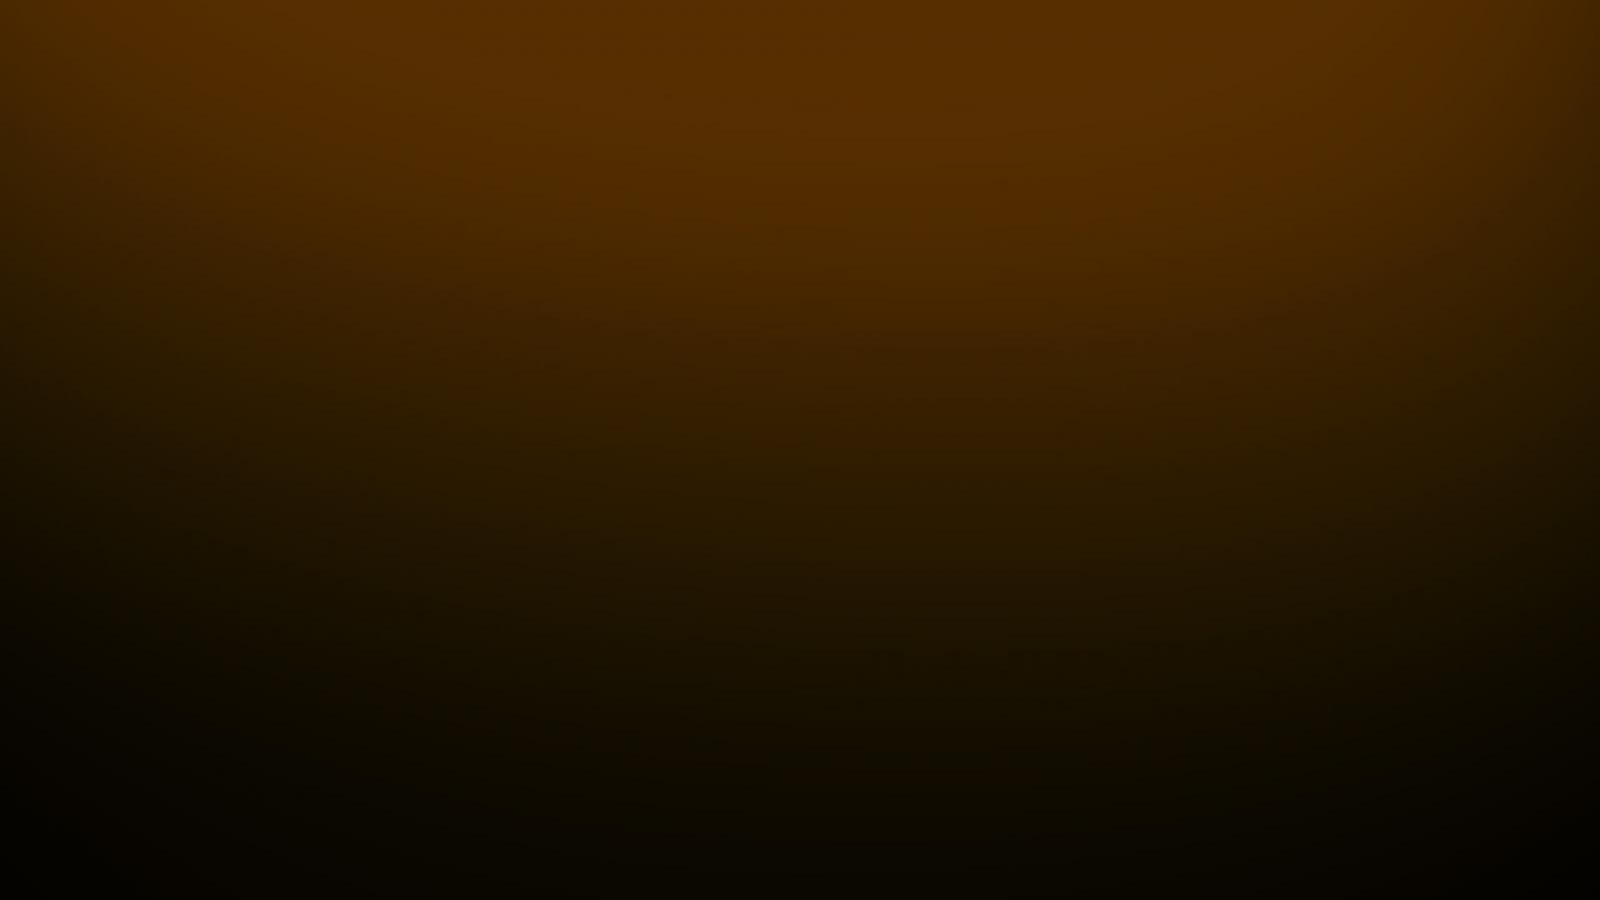 1bpblogspot E4 SpRHL7BE UJnReRK9yXI Brown Wallpaper